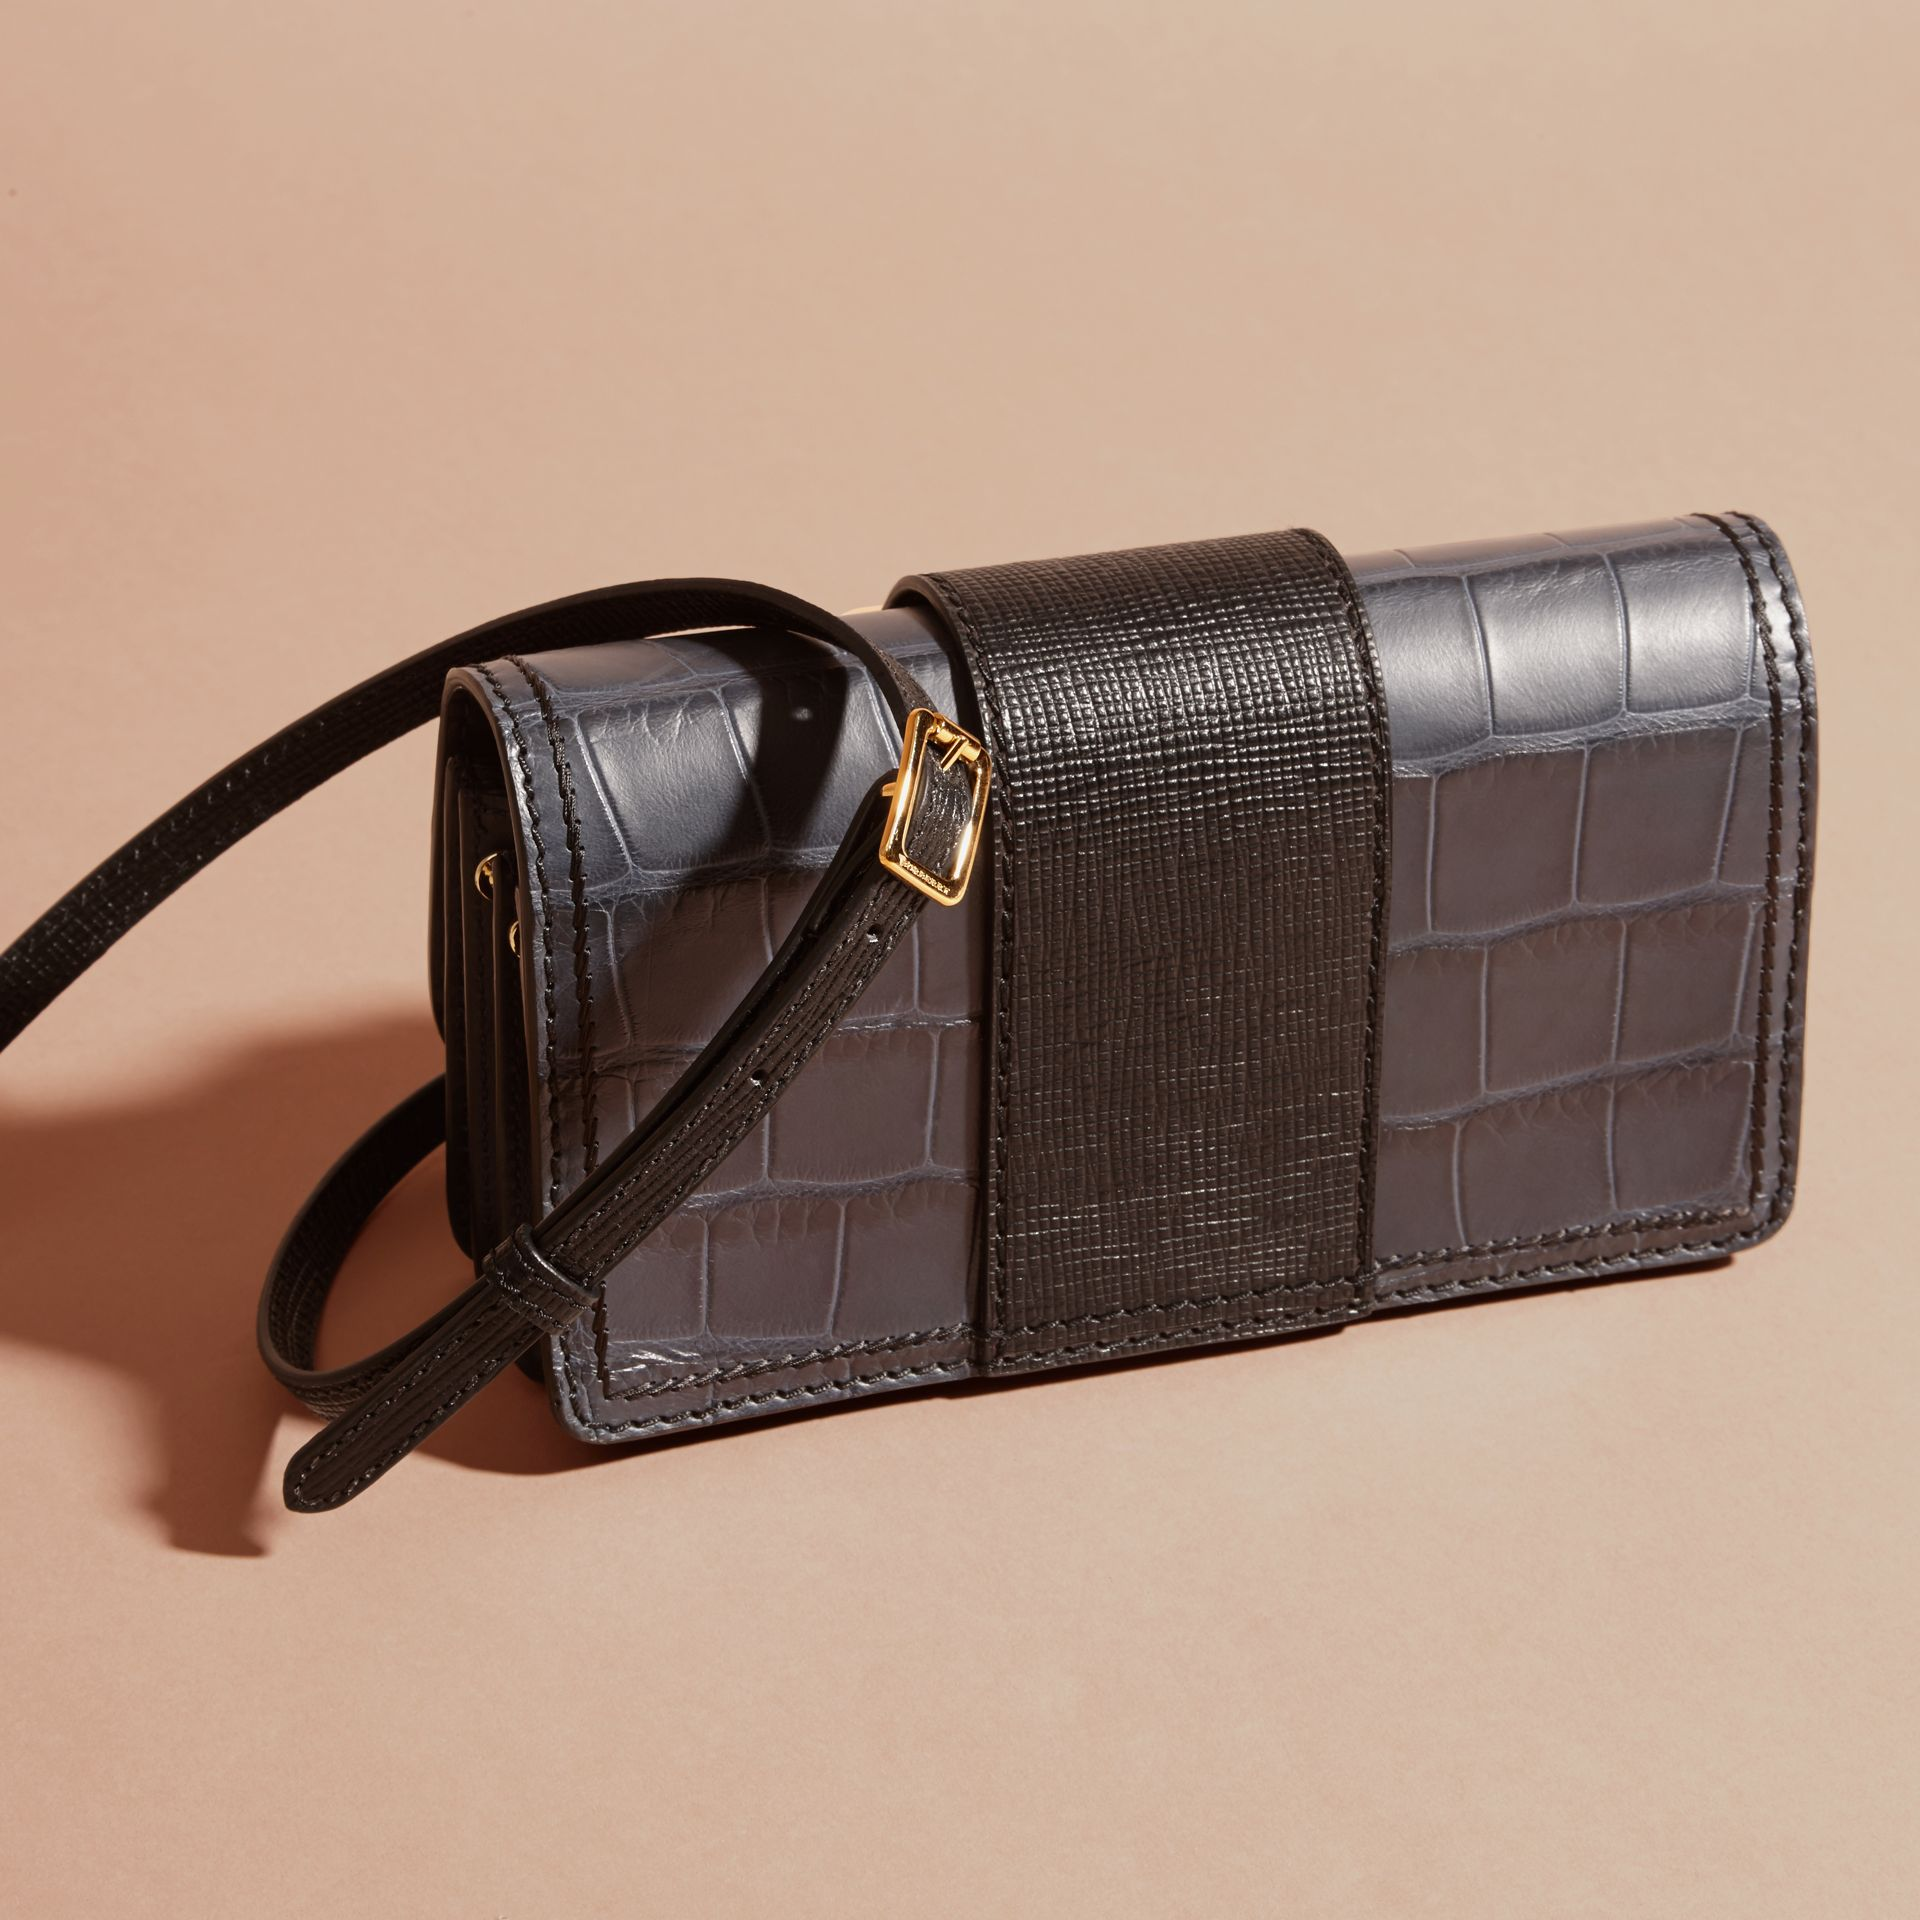 The Small Buckle Bag in Alligator and Leather in Navy / Black - Women | Burberry - gallery image 5